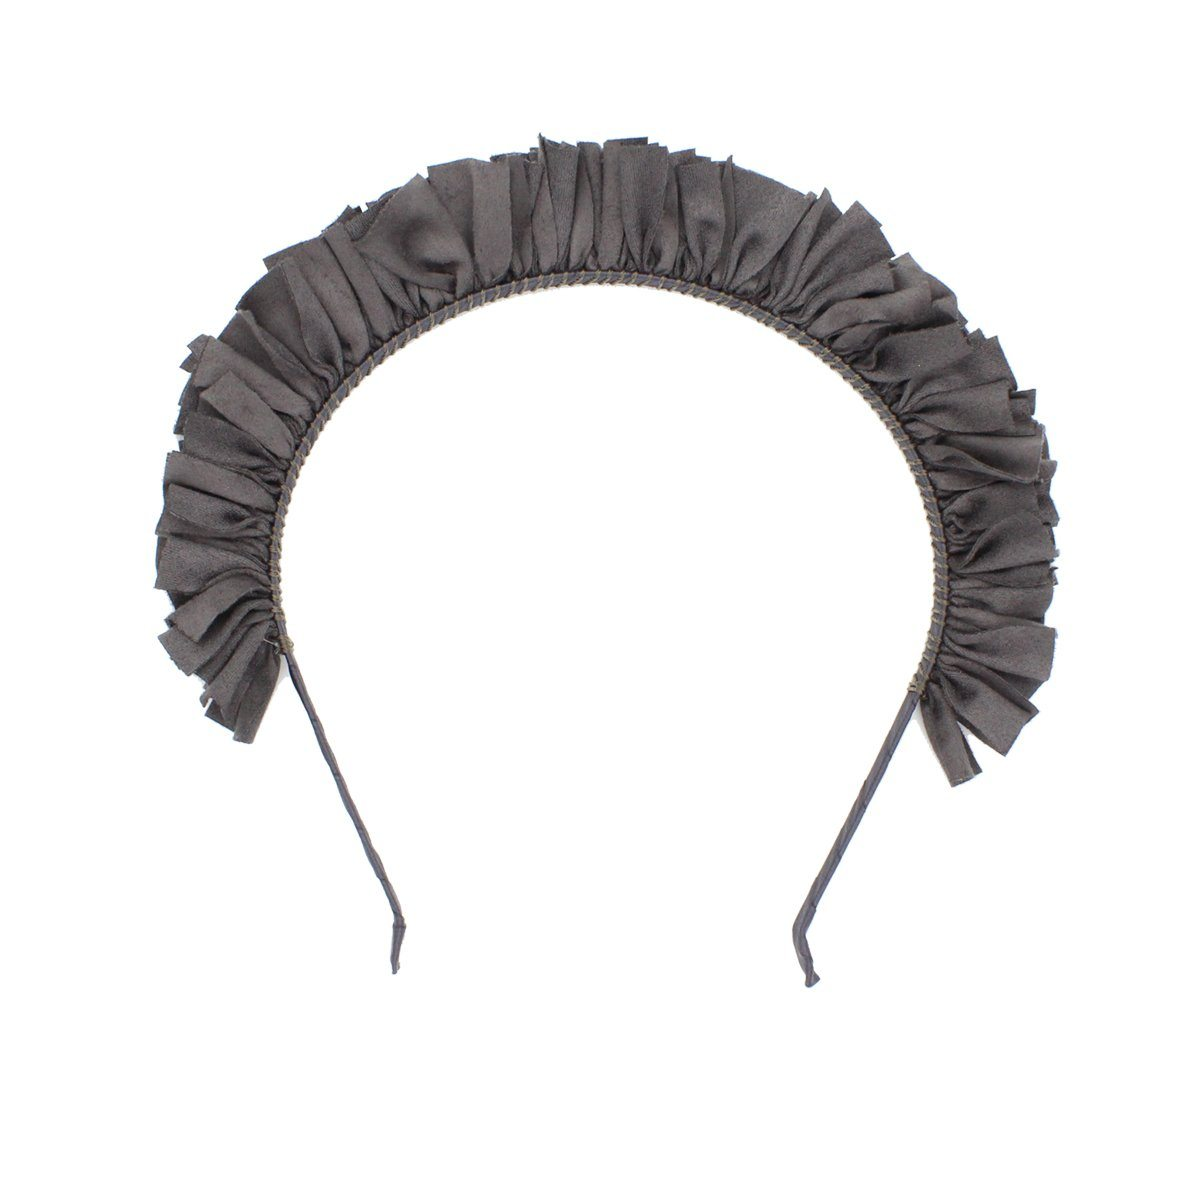 Suede Wreath Headband